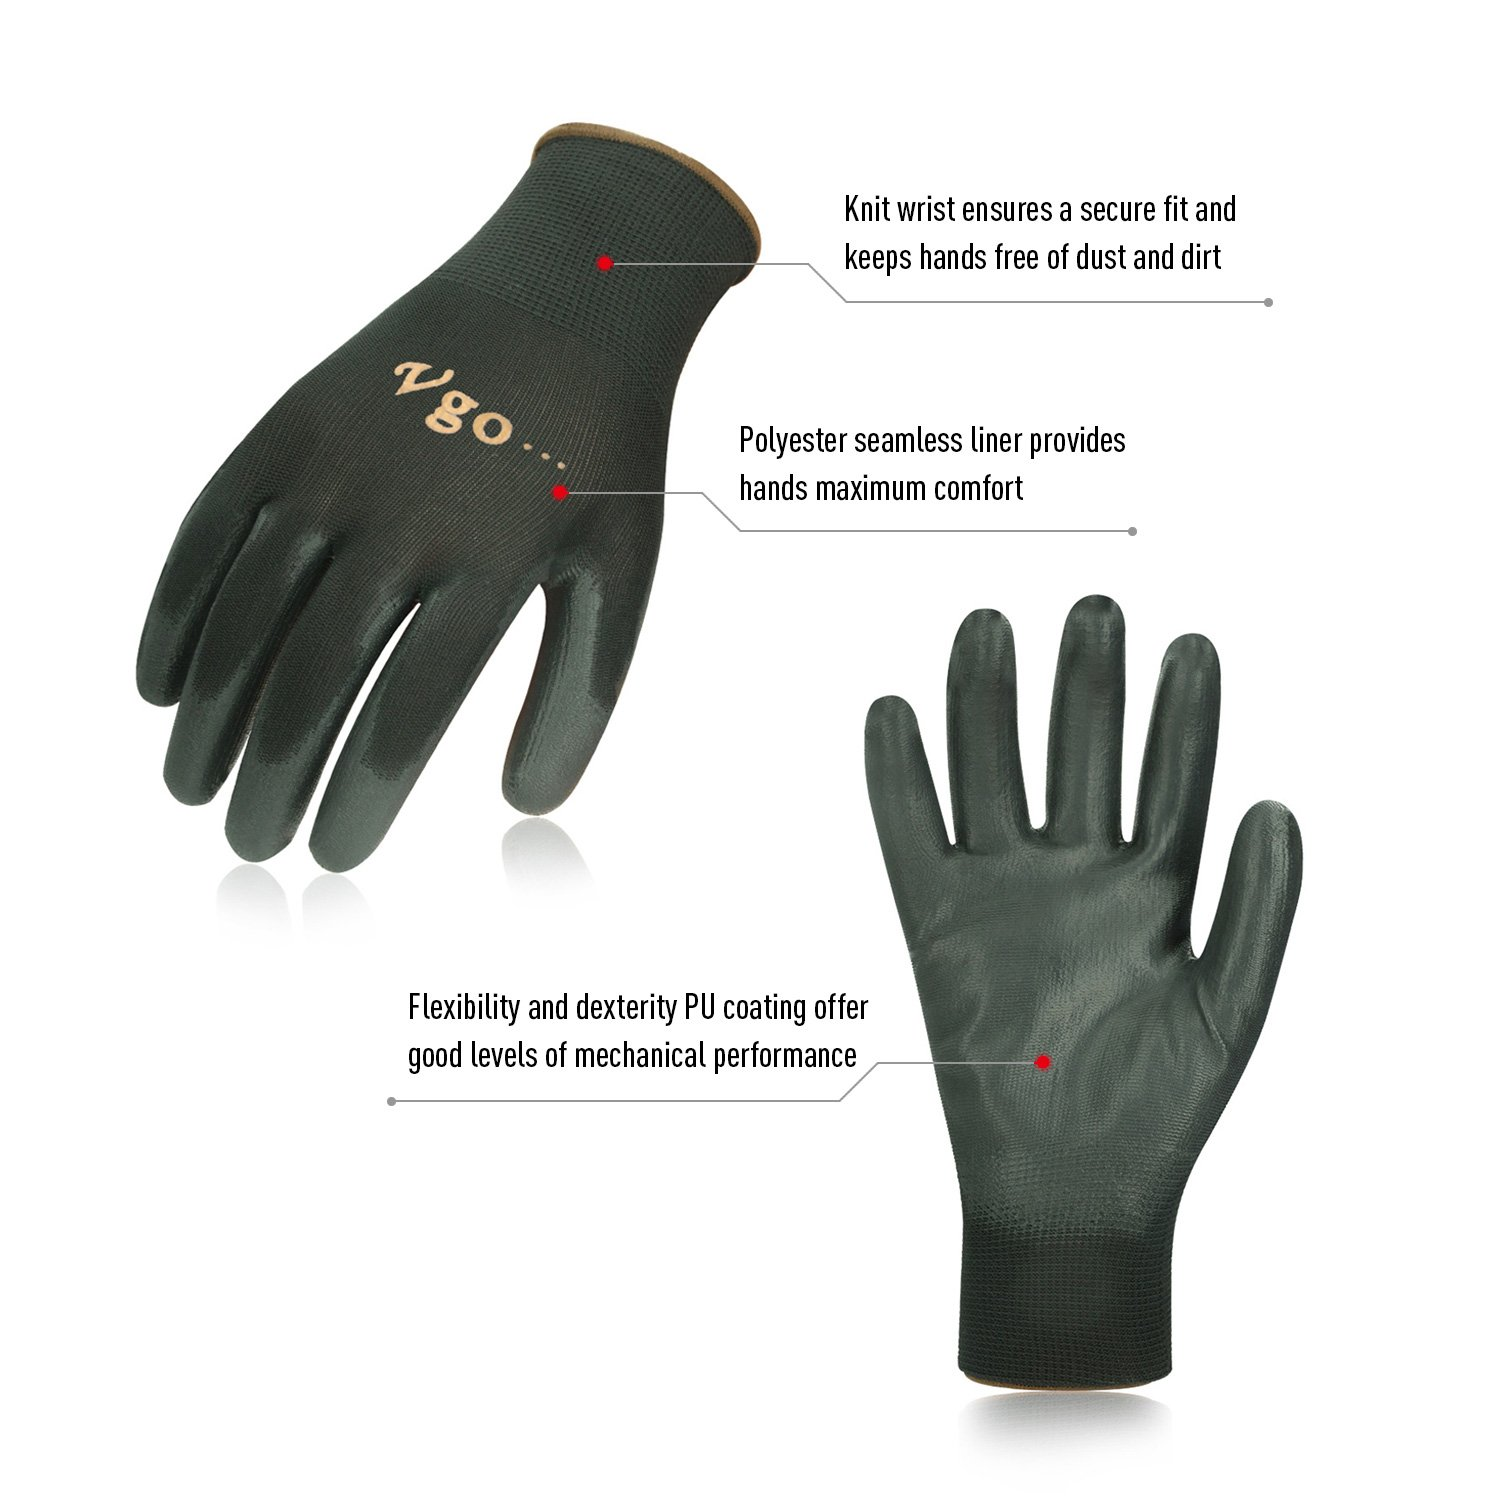 Vgo… PU Coated Gardening and Work Gloves (15 Pairs, Black Color, Size 9/L and 10/XL) by Vgo... (Image #2)